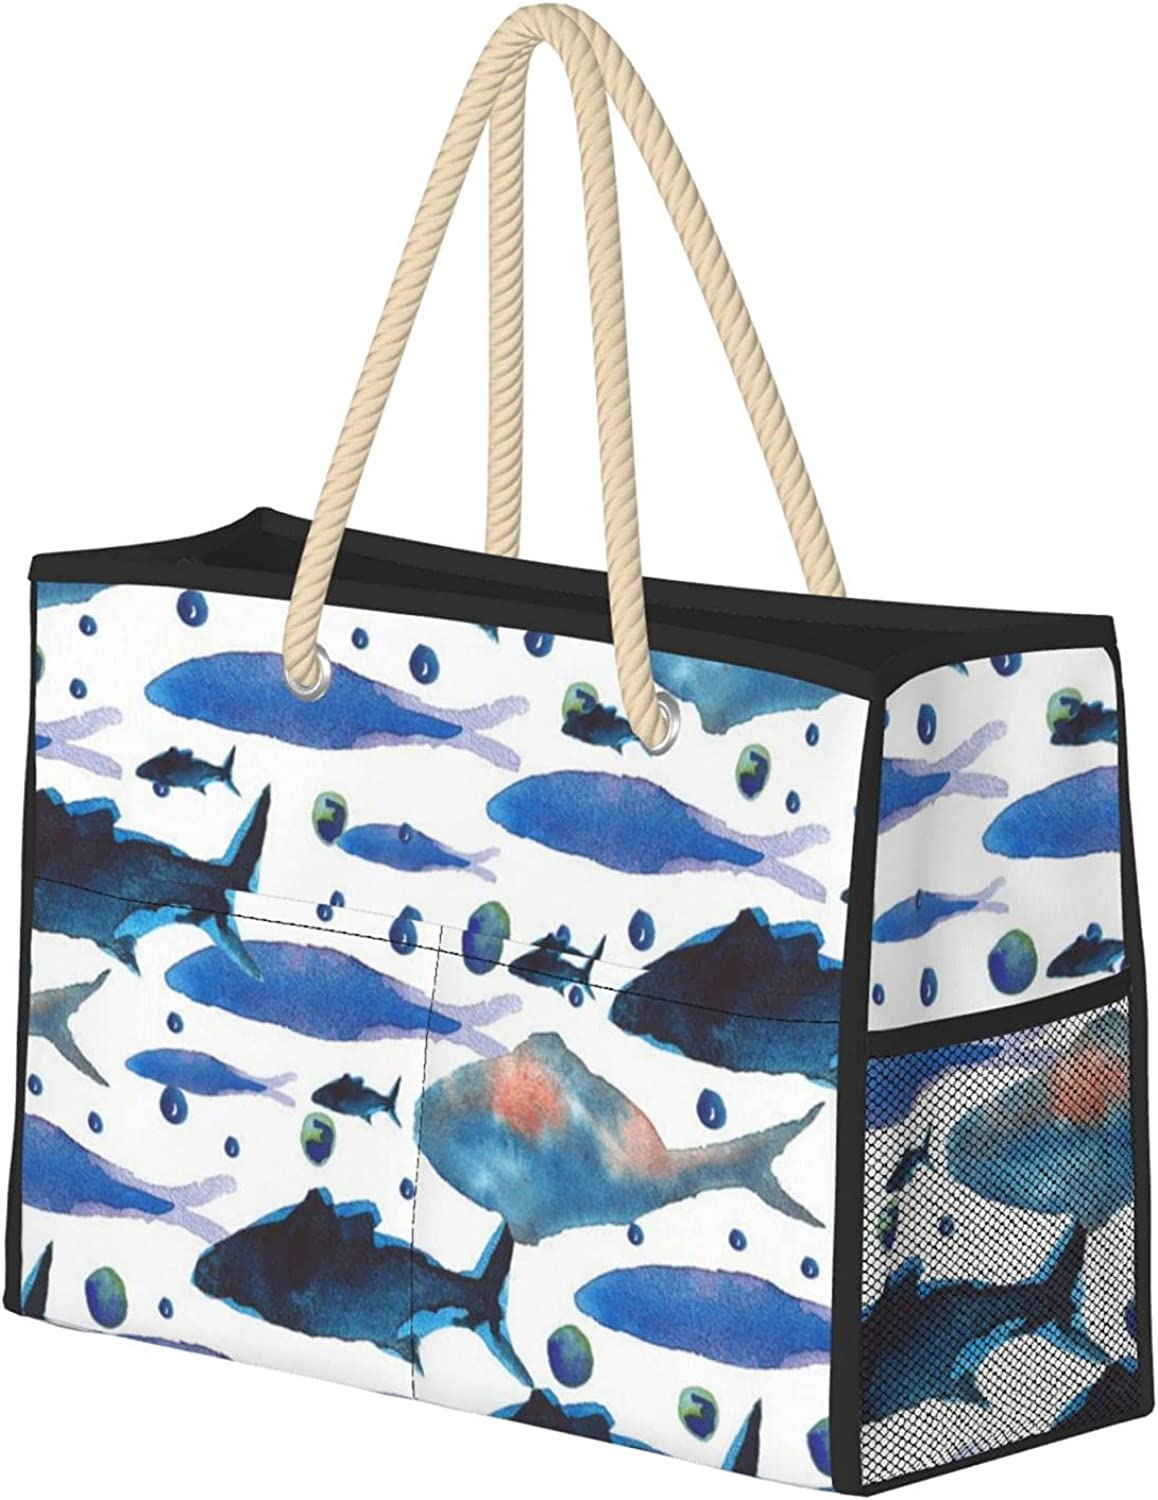 Large Beach Bag Travel for Max 40% OFF Pool with Inexpensive Tote Women -